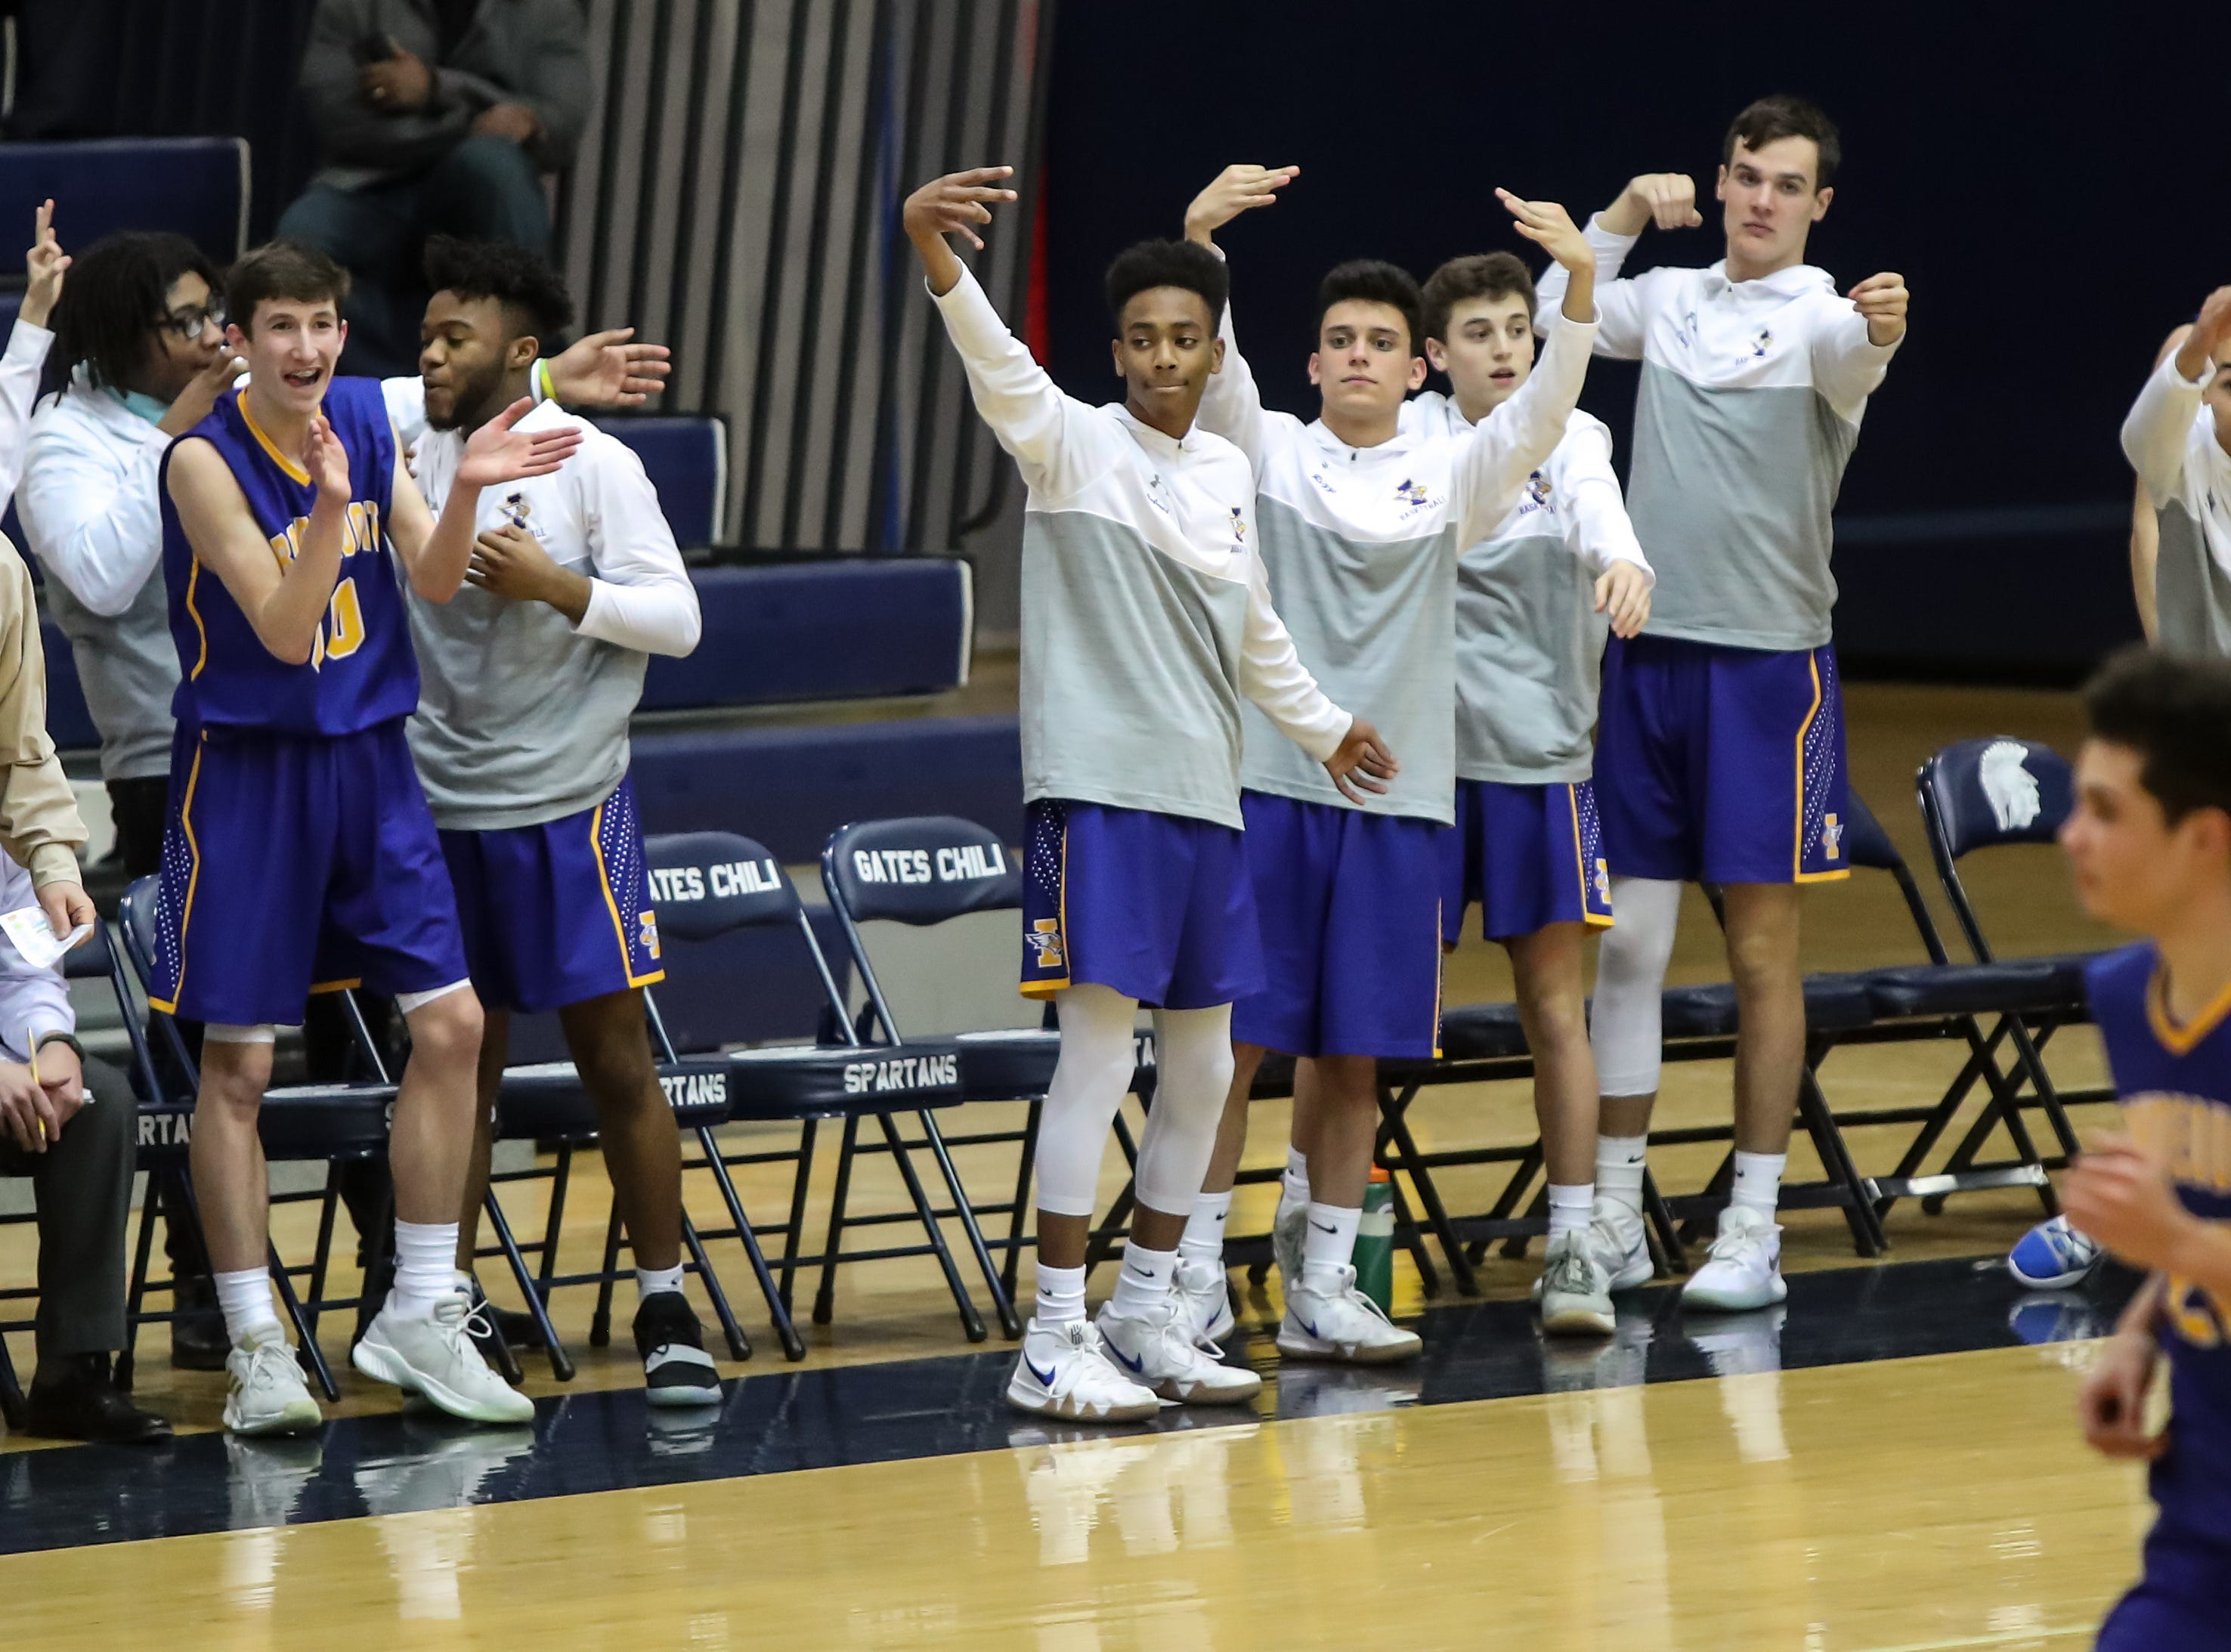 The Irondequoit Eagles bench celebrates a 3-pointer against the Gates Chili Spartans during a Section V high school boys basketball game at Gates Chili High School on Feb. 1, 2019.